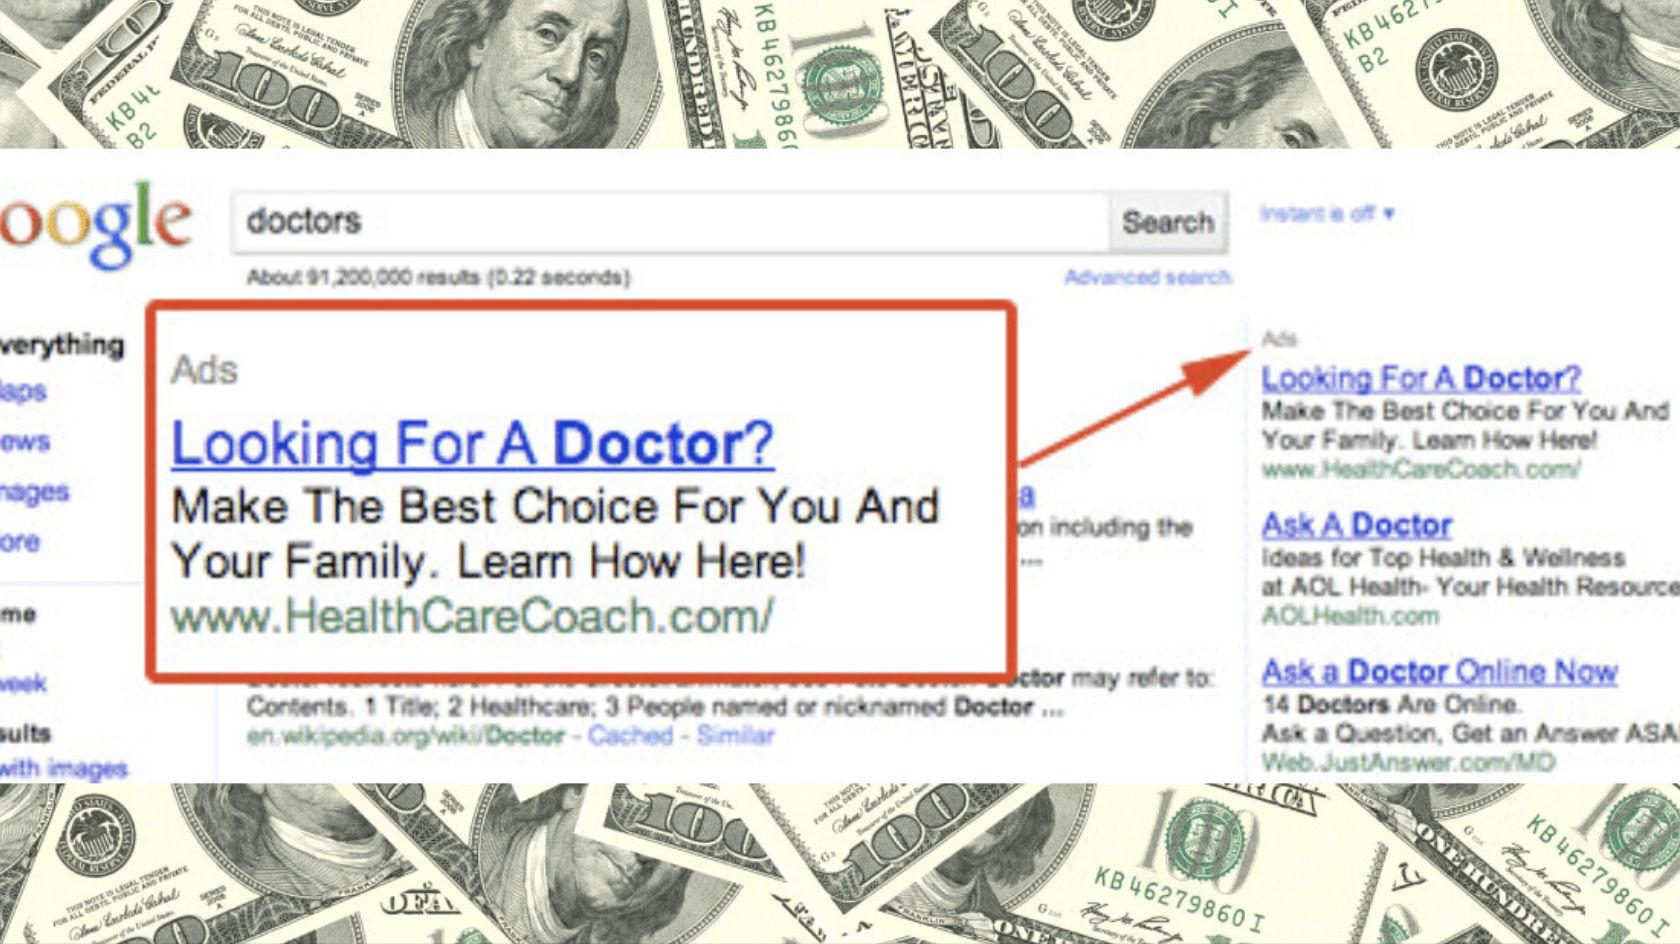 Here's How Much Money You Made Google By Staring At Its Ads For 20 Years